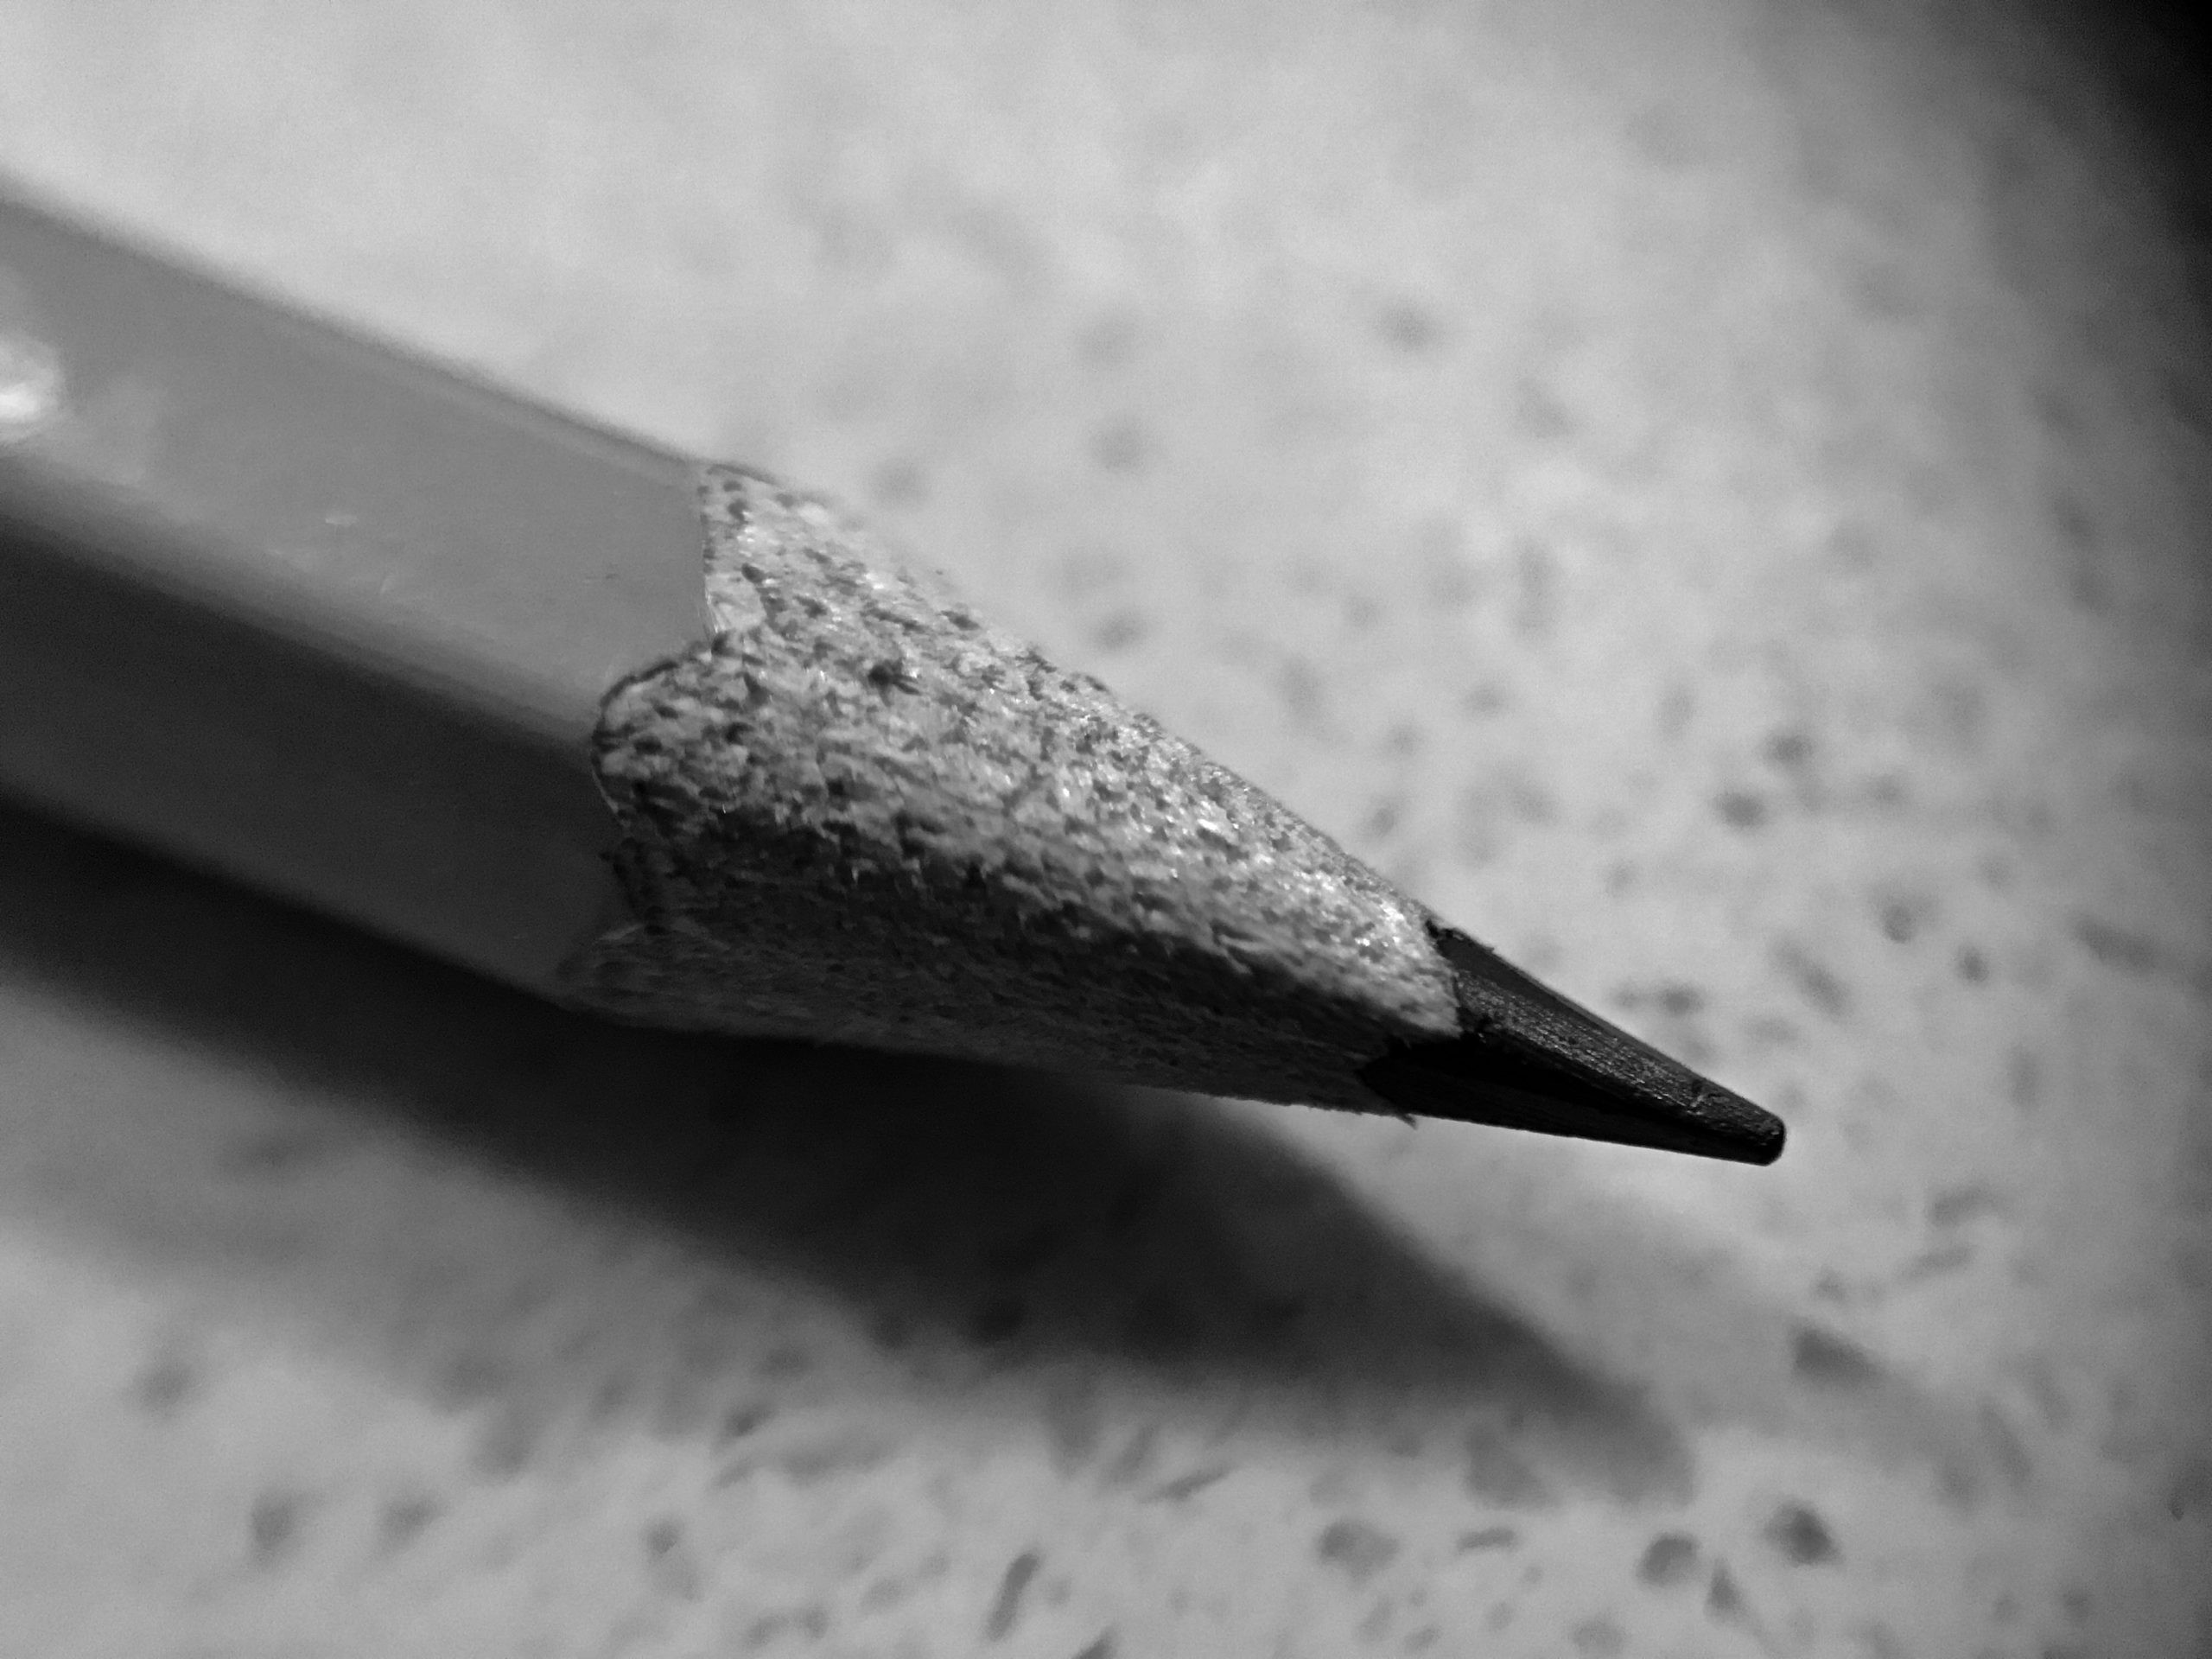 Image of a well sharpened pencil in back and white.